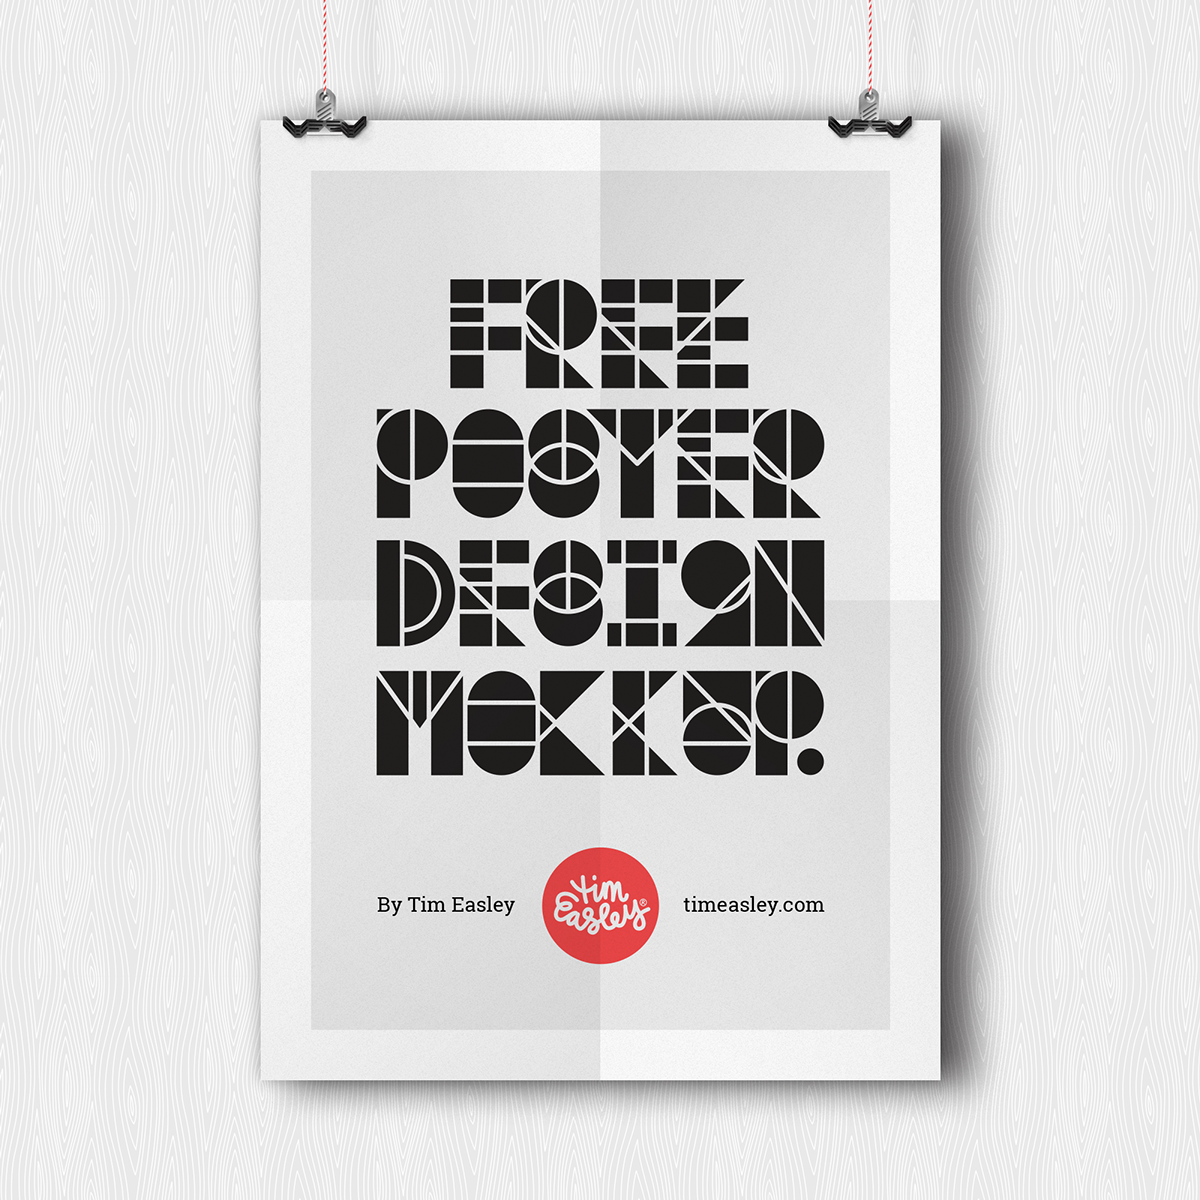 Poster design behance - Free Poster Design Mockup On Behance